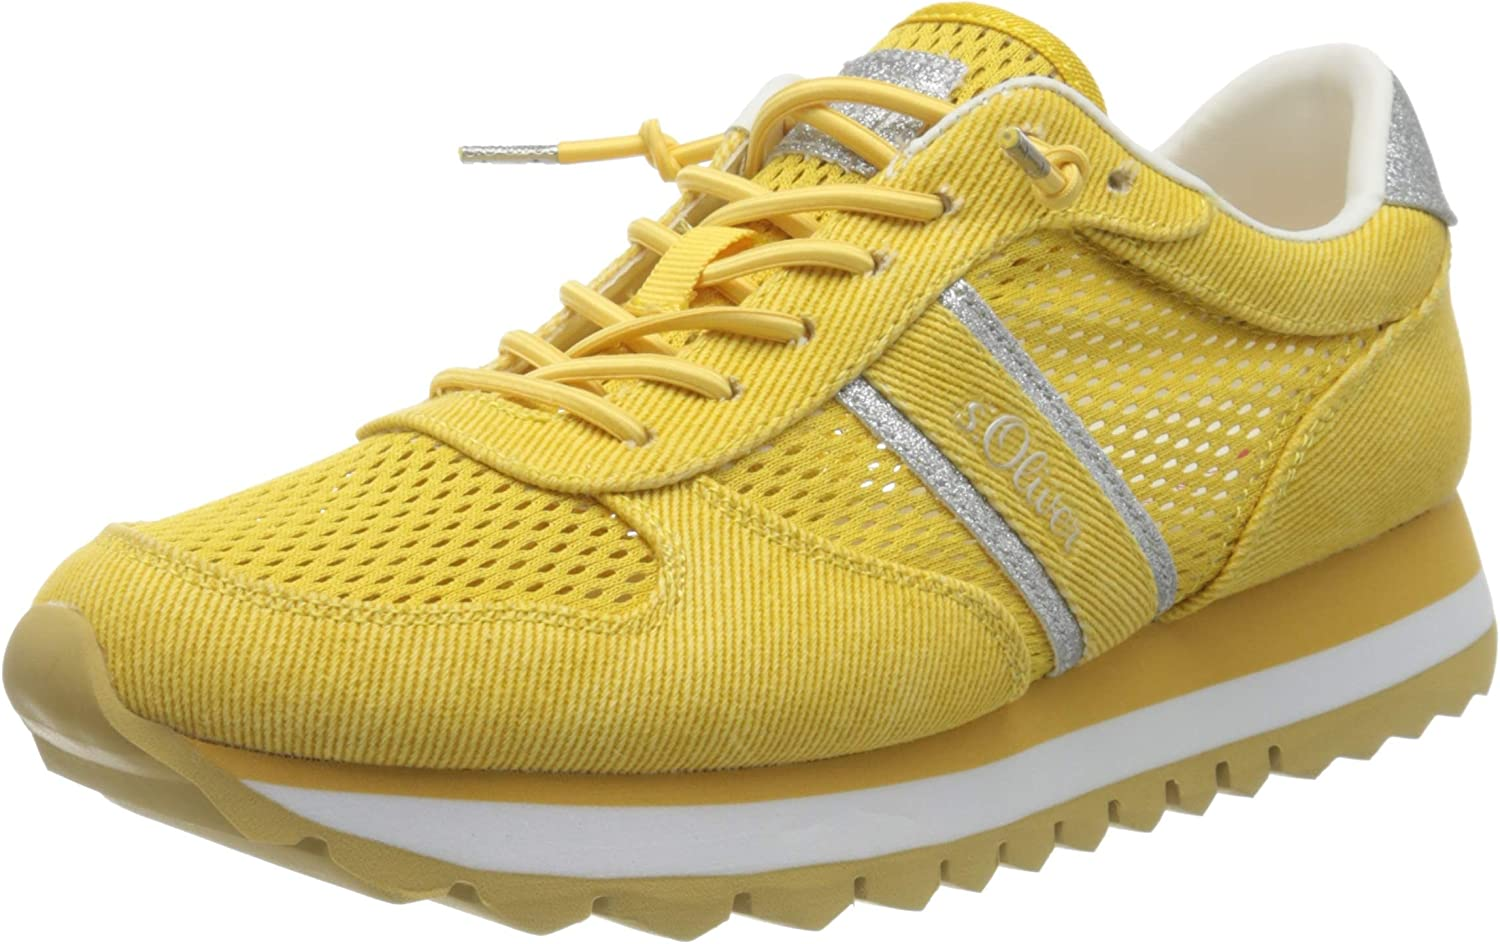 s.Oliver Free Shipping New Women's Low-Top 7.5 us Sneaker Overseas parallel import regular item